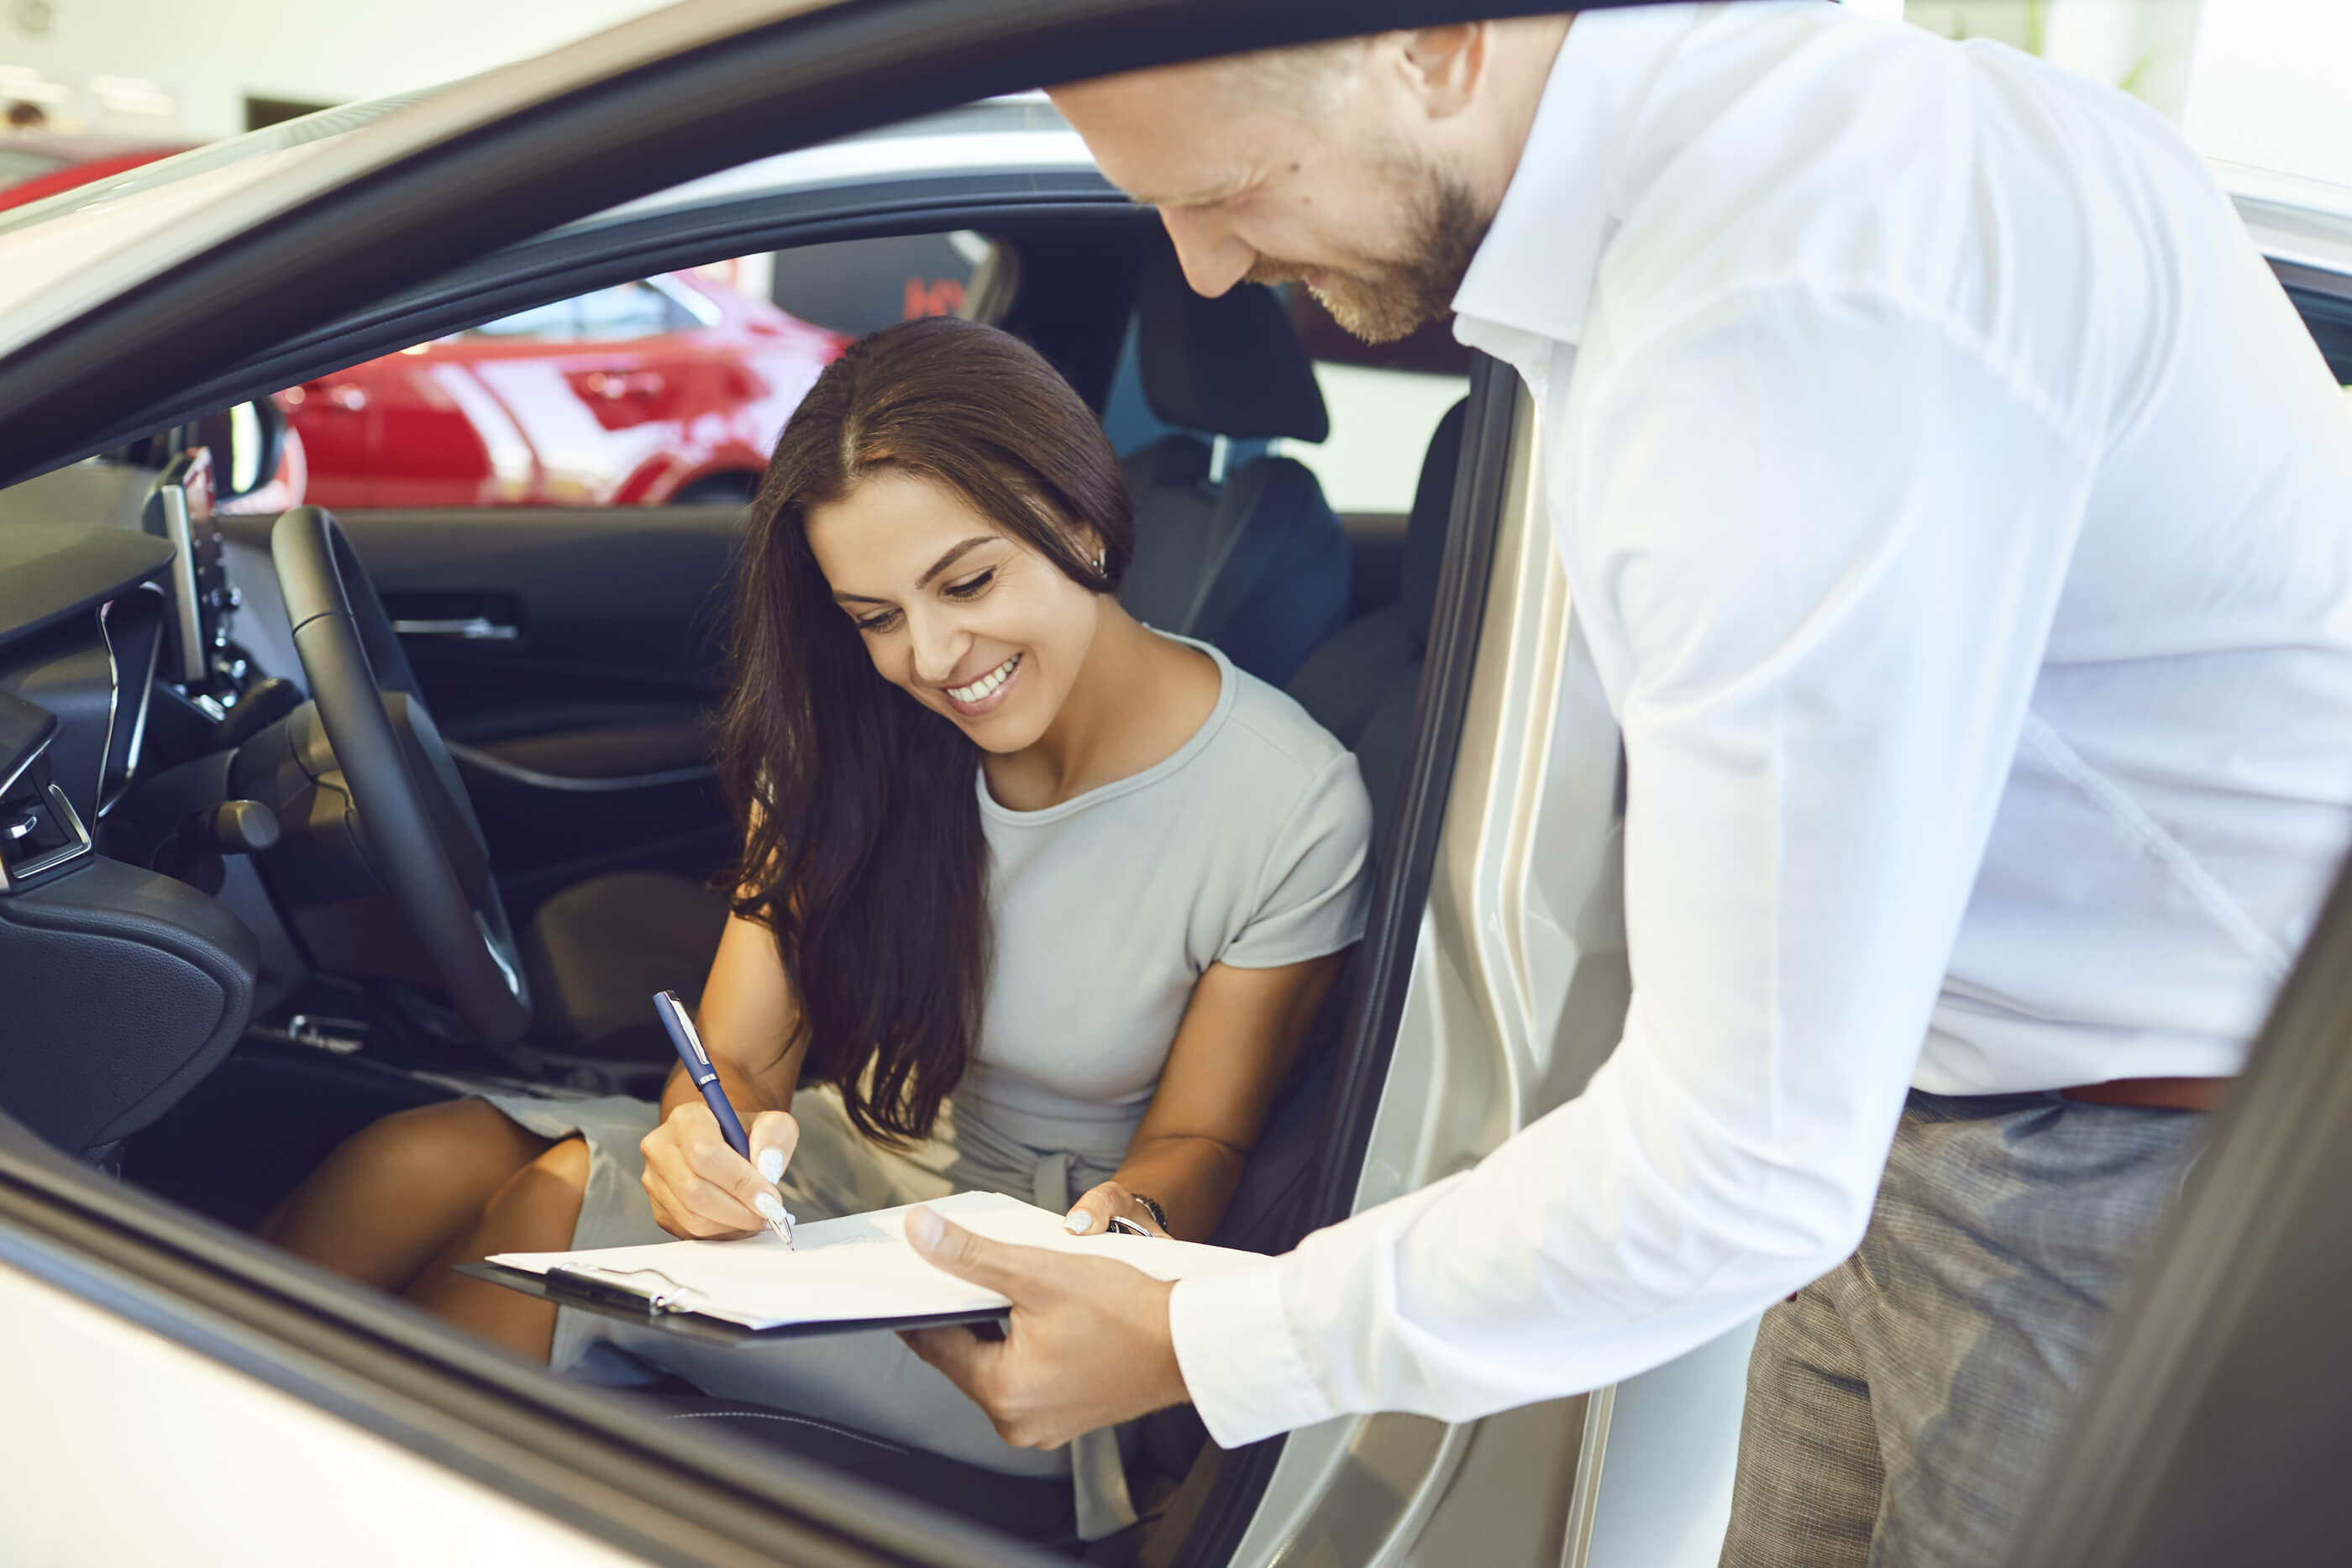 5 Questions to Ask When Renting a Car